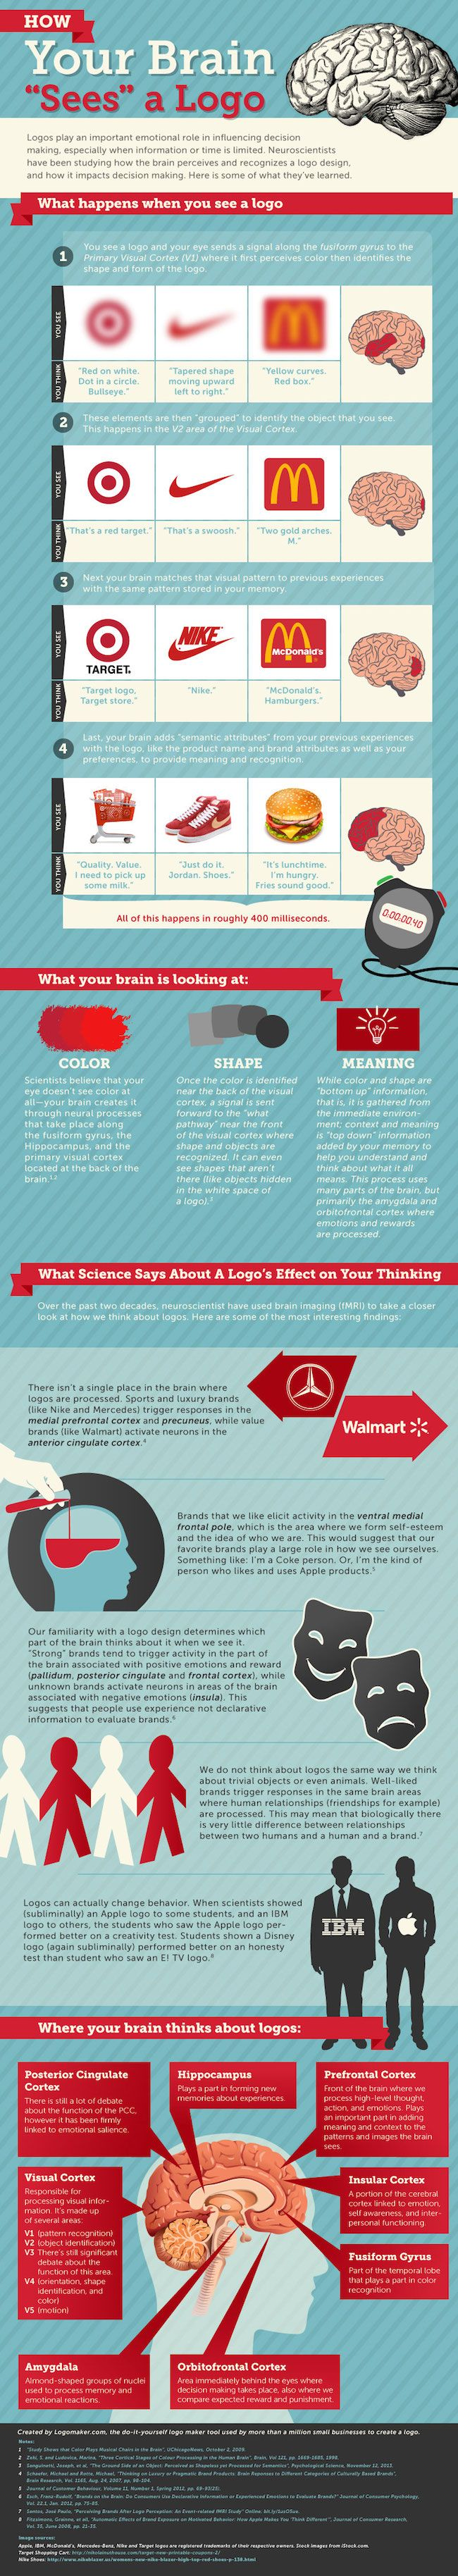 "How Your Brain ""Sees"" Logos , via @HubSpot"